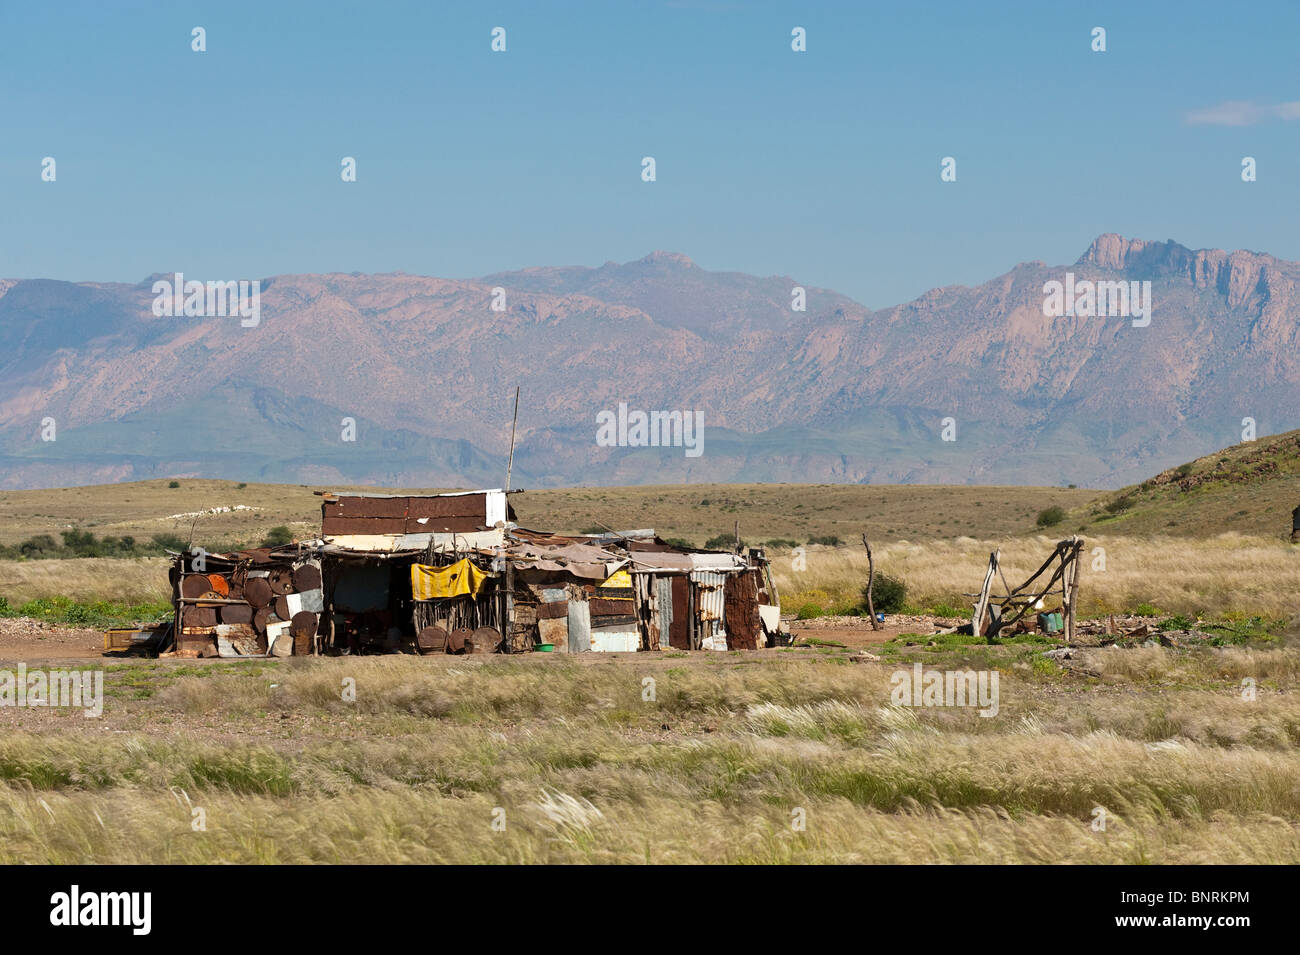 Shack with the Brandberg in the background Namibia - Stock Image